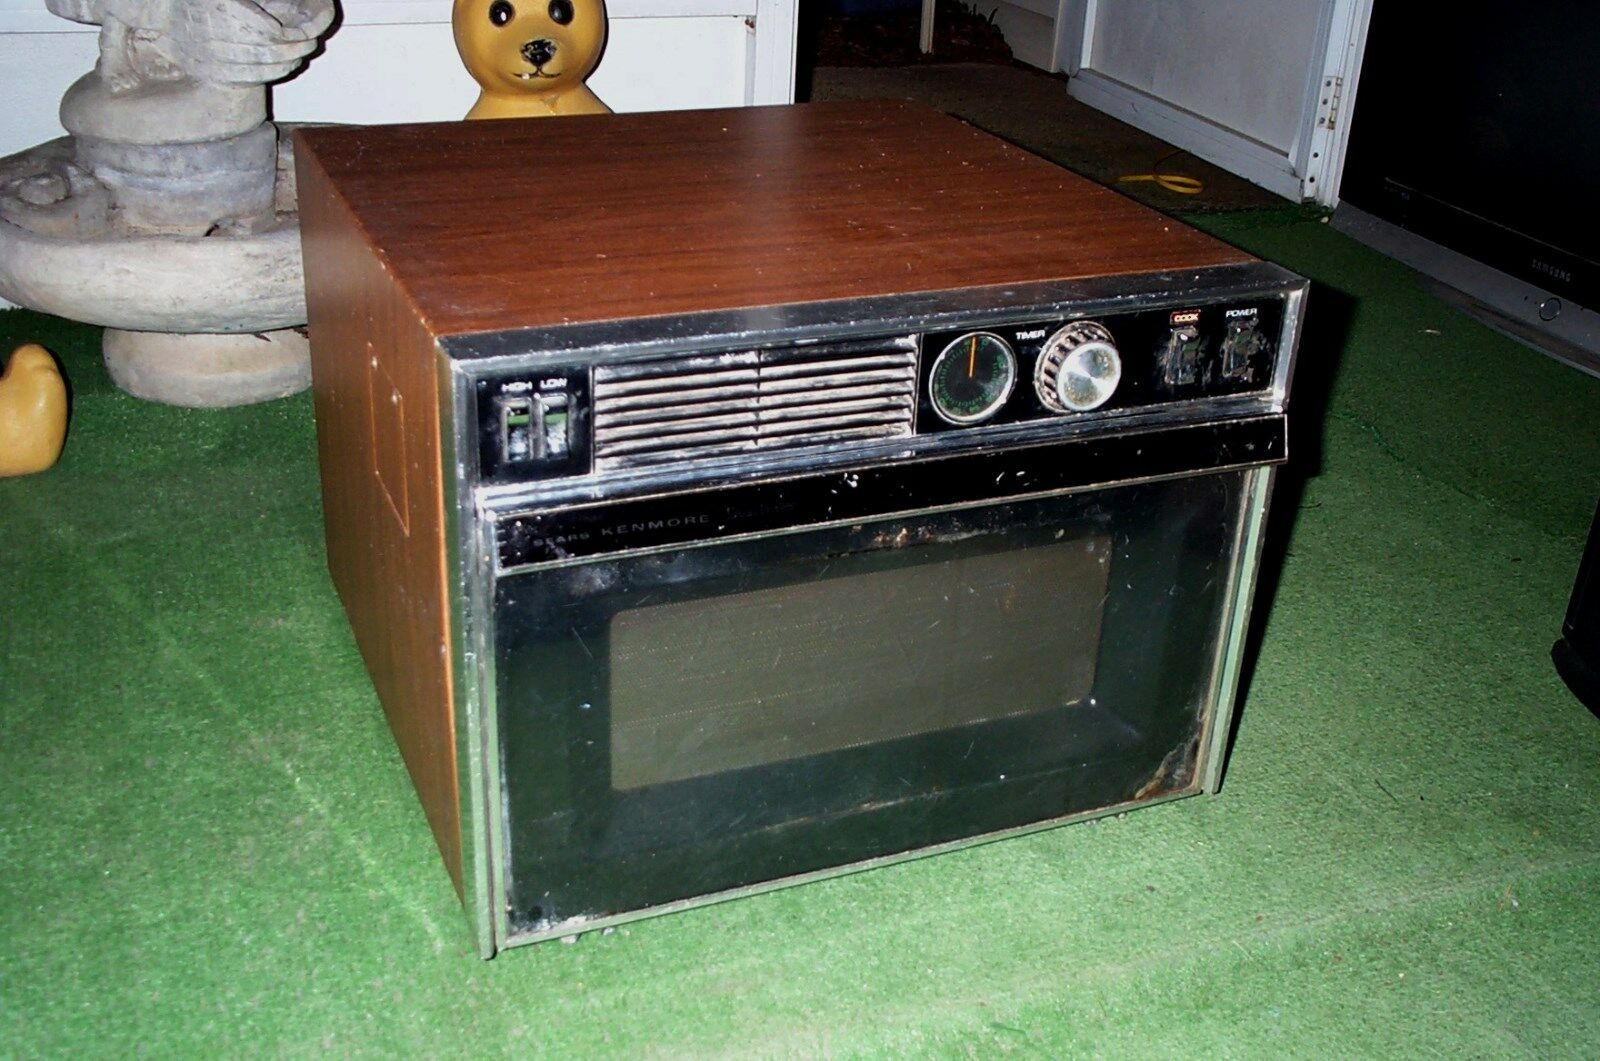 microwave oven vintage 1970 s 1980 sears kenmore rotary knobs antique appliance